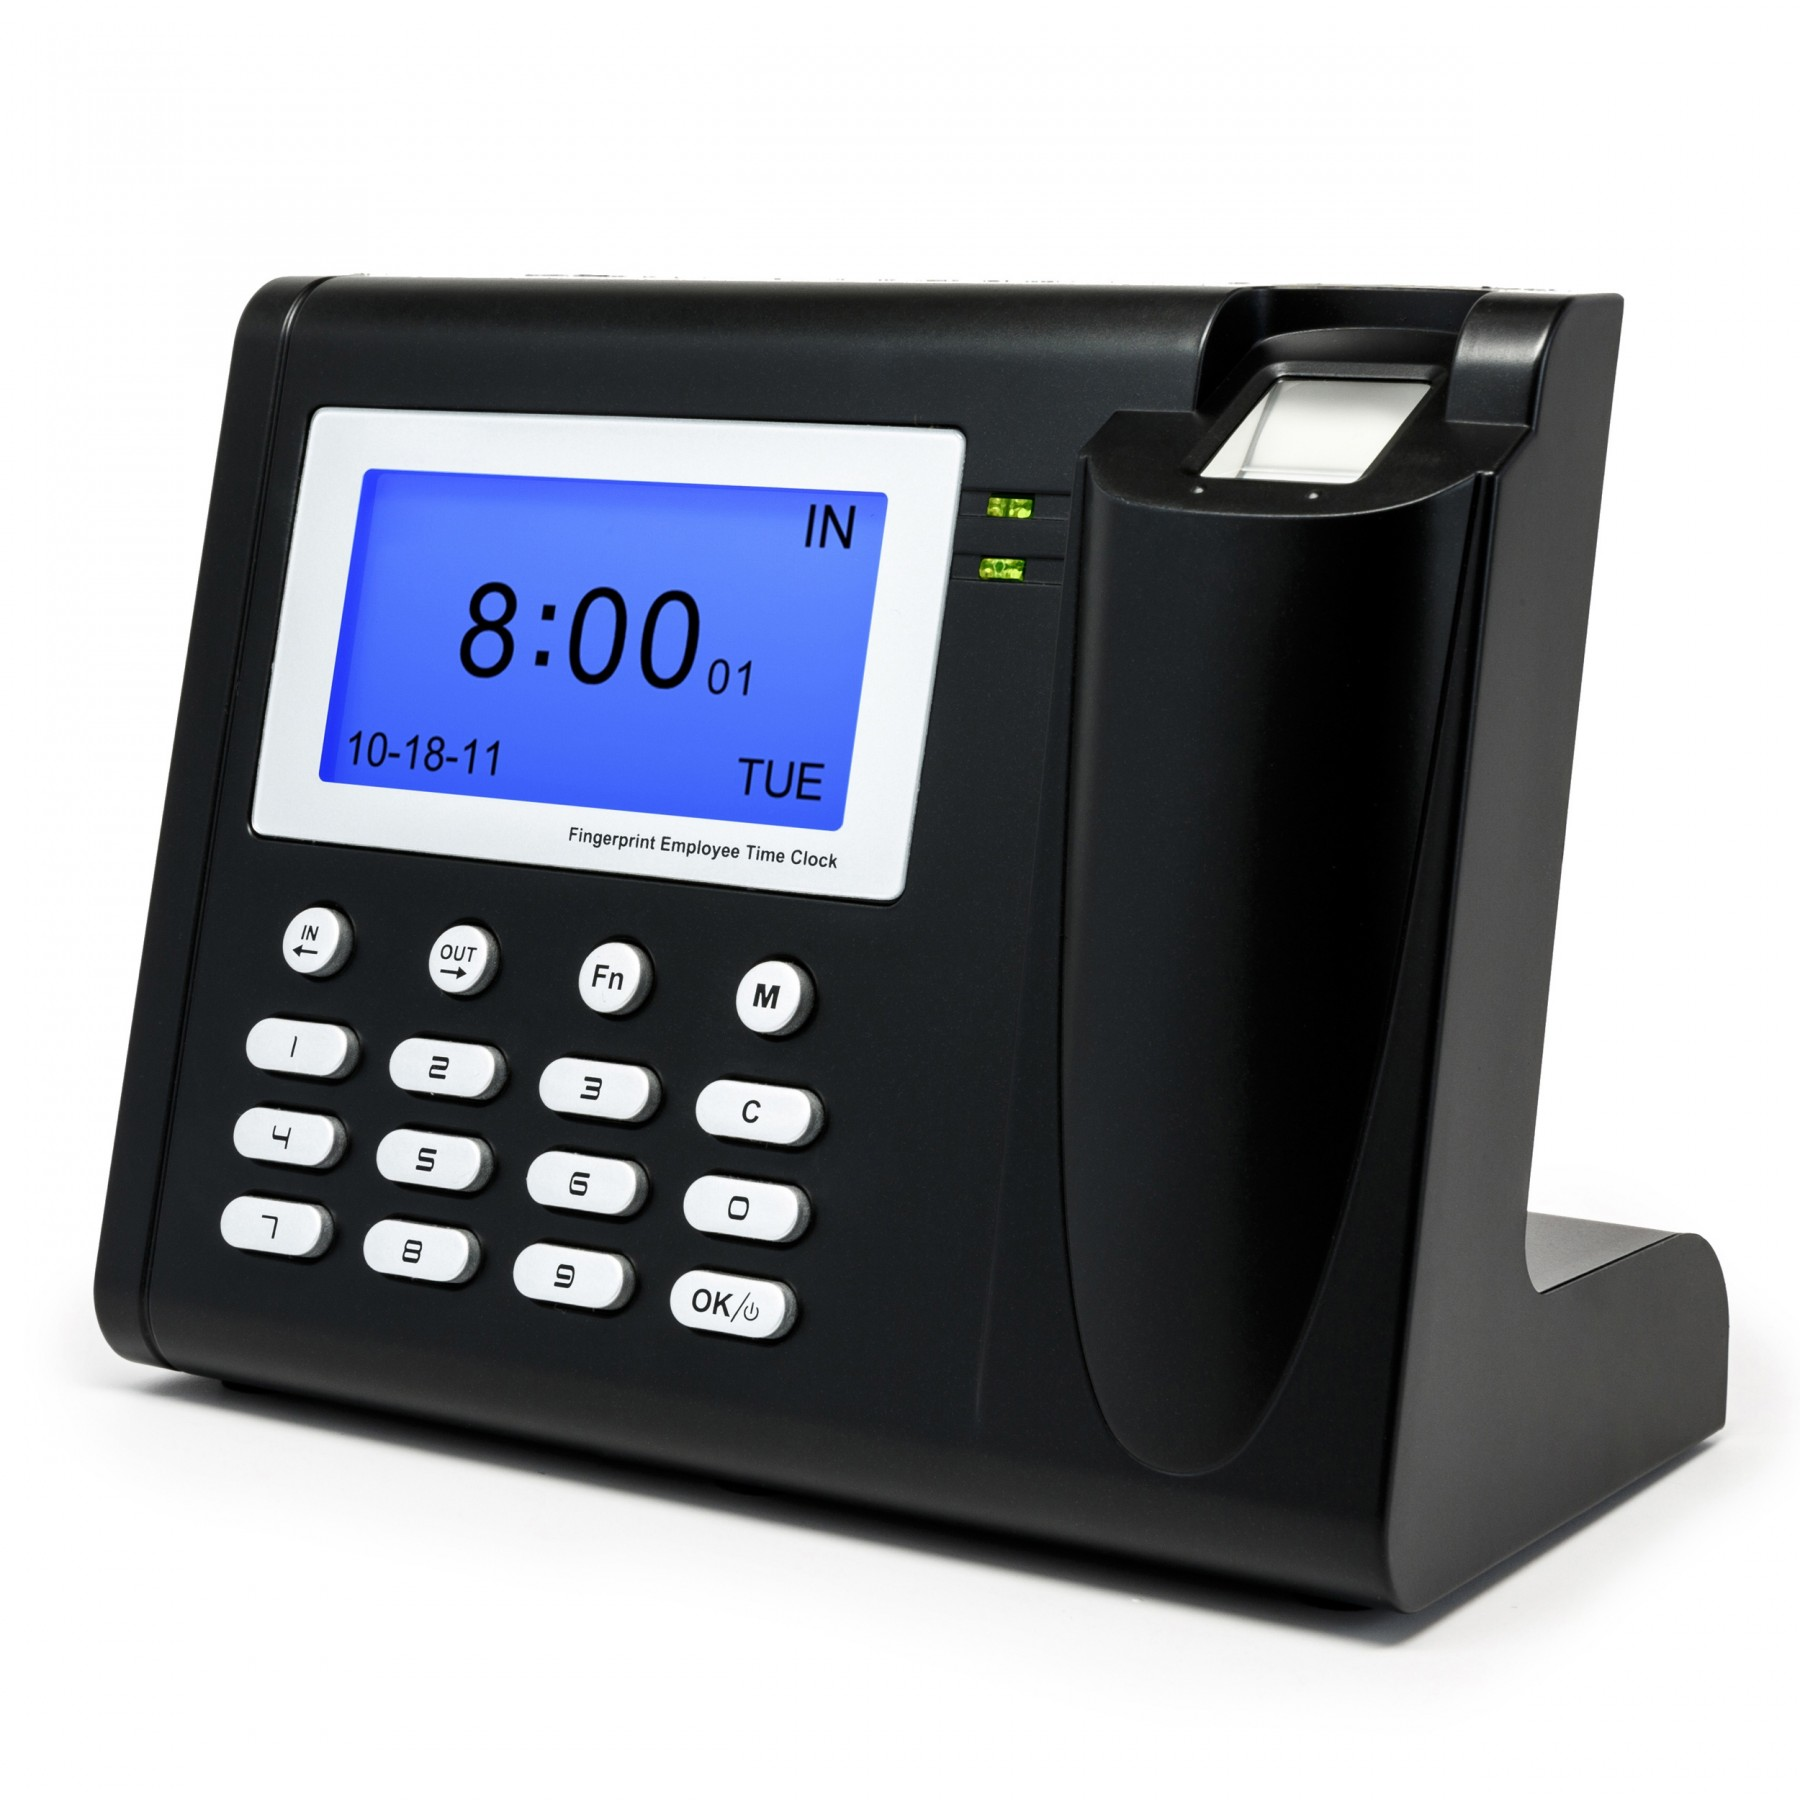 Tas Cr100 Desktop Fingerprint Time Clock